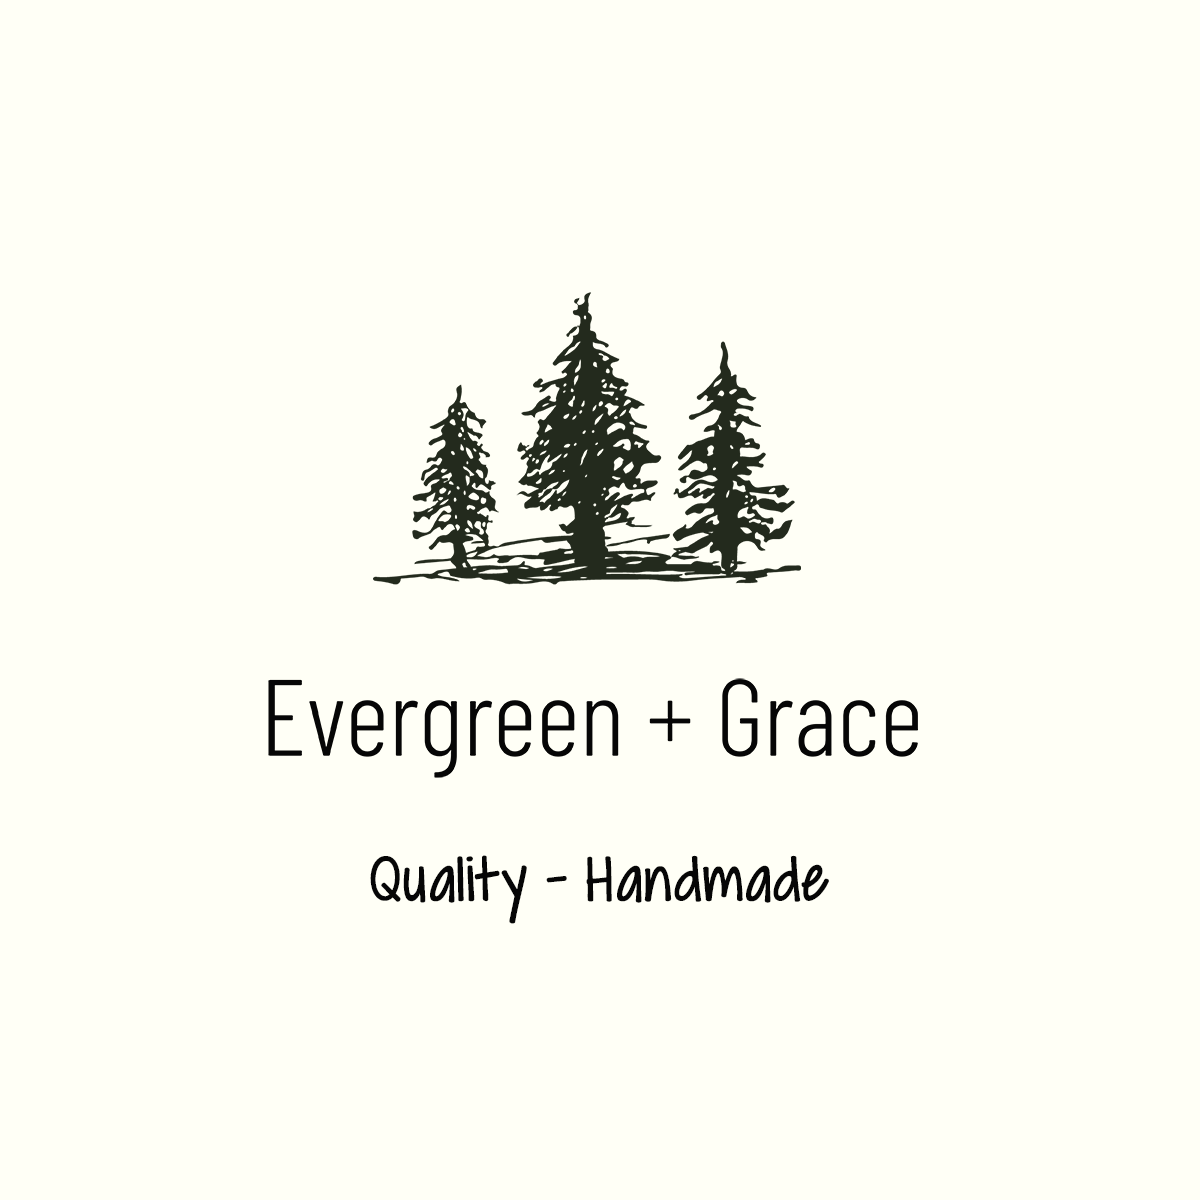 Evergreen + Grace